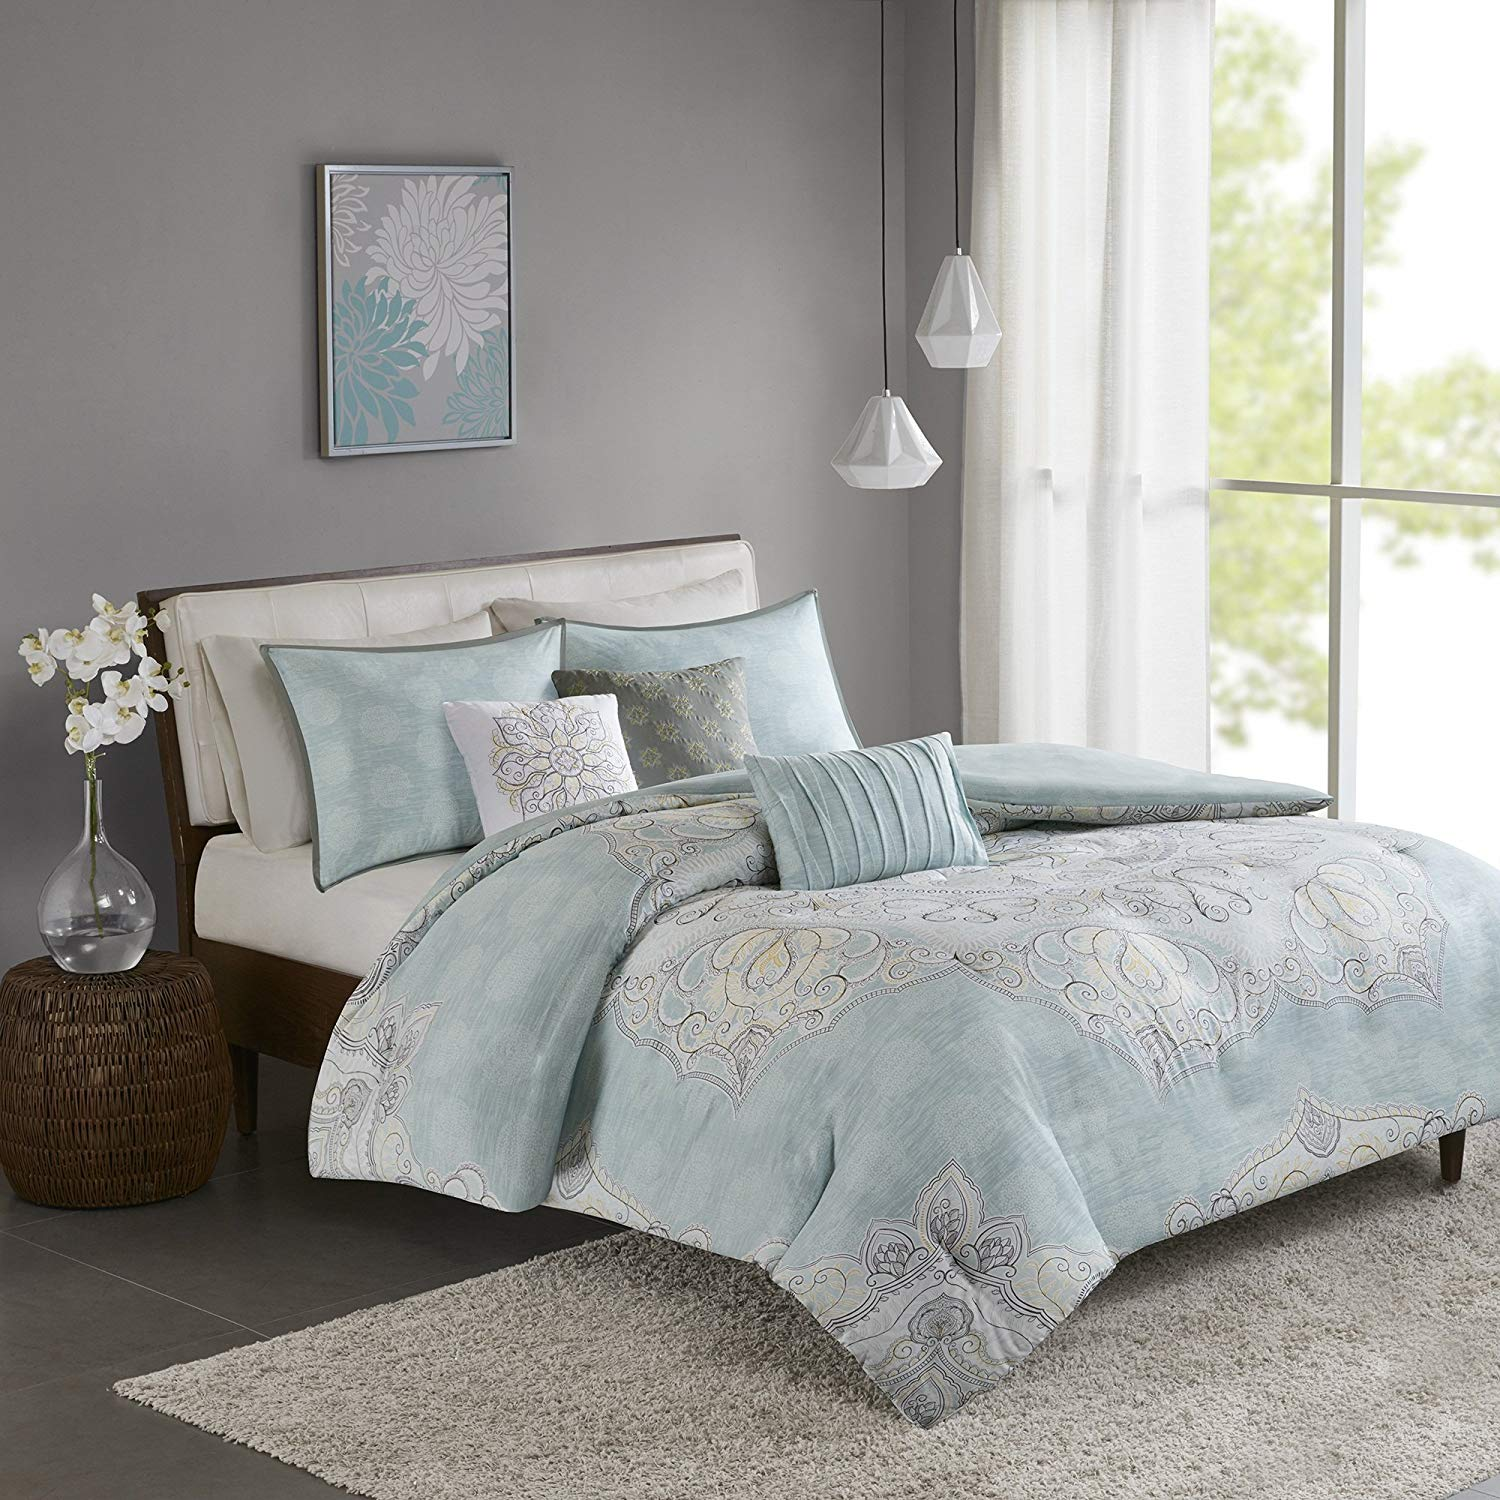 7 Piece King/ Cal King , Graceful Classic Floral Pattern Duvet Cover Set, Contemporary Modern Animal Print Design, Mid-Century Nature Themed, Global Ruffled Bedding, Adorable Aqua, Grey Color Unisex